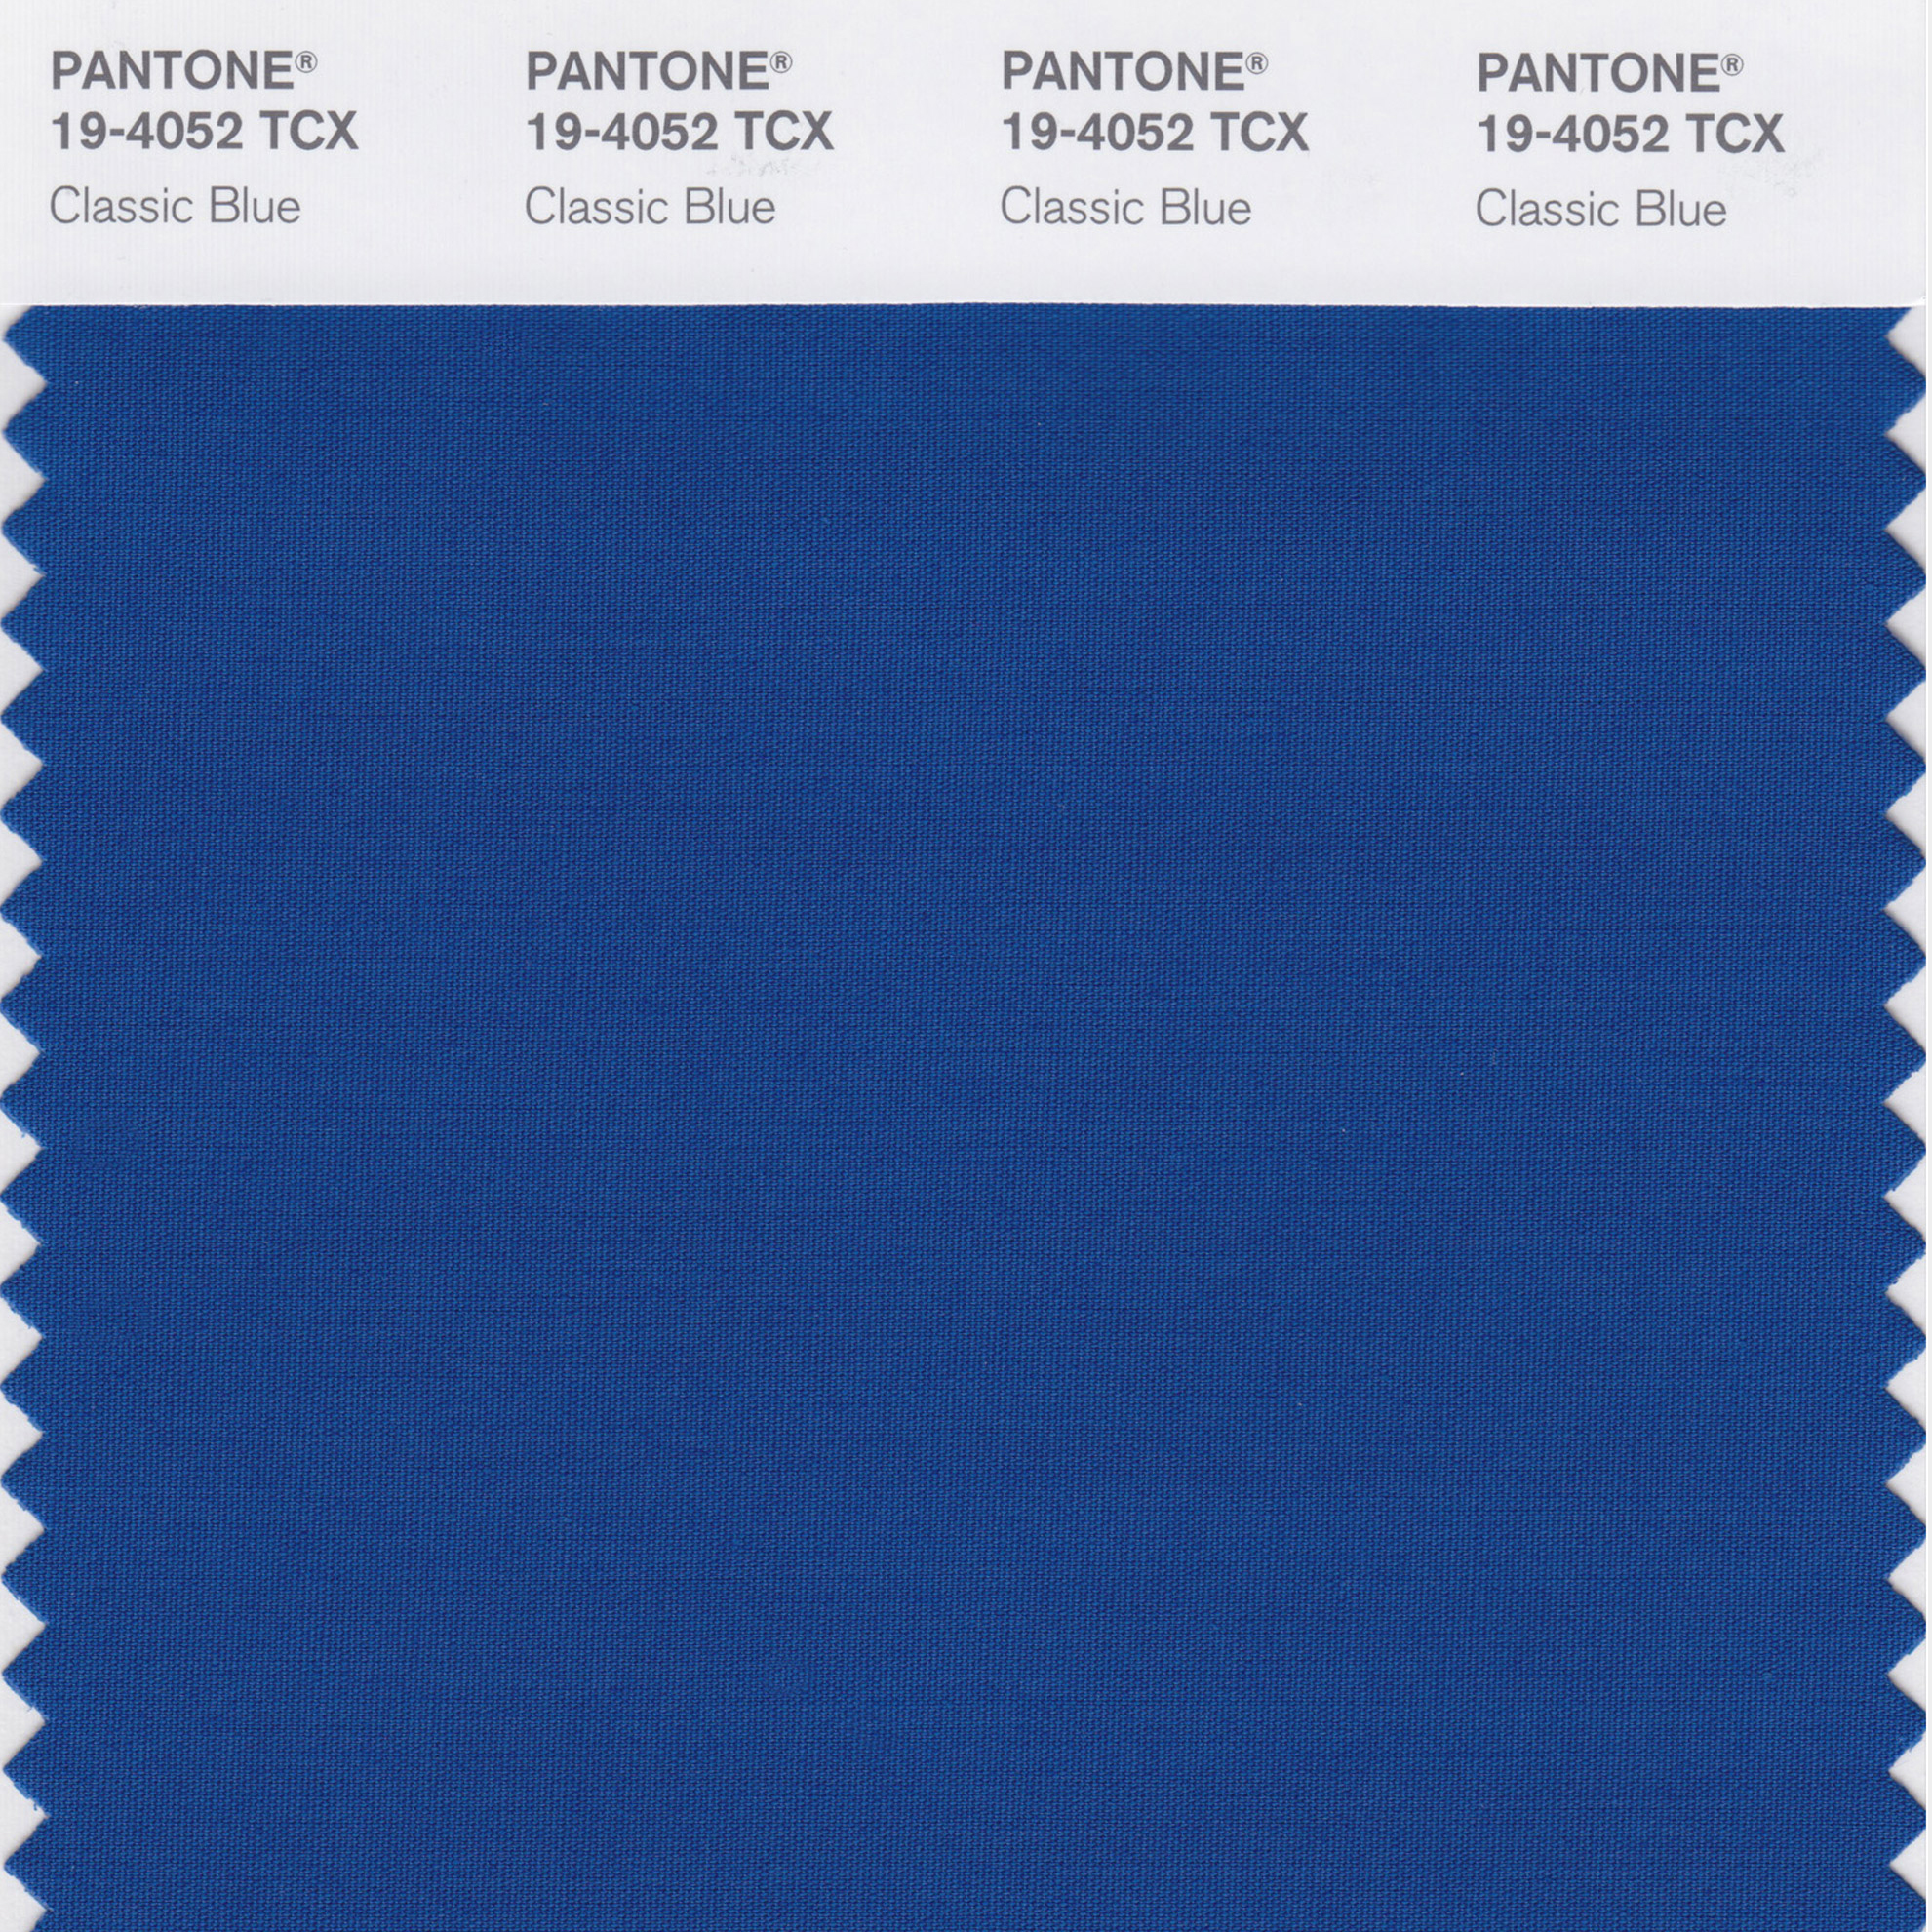 Classic Blue Is Pantone S Colour Of The Year For 2020,How To Clean A Kitchen Sink Drain That Smells